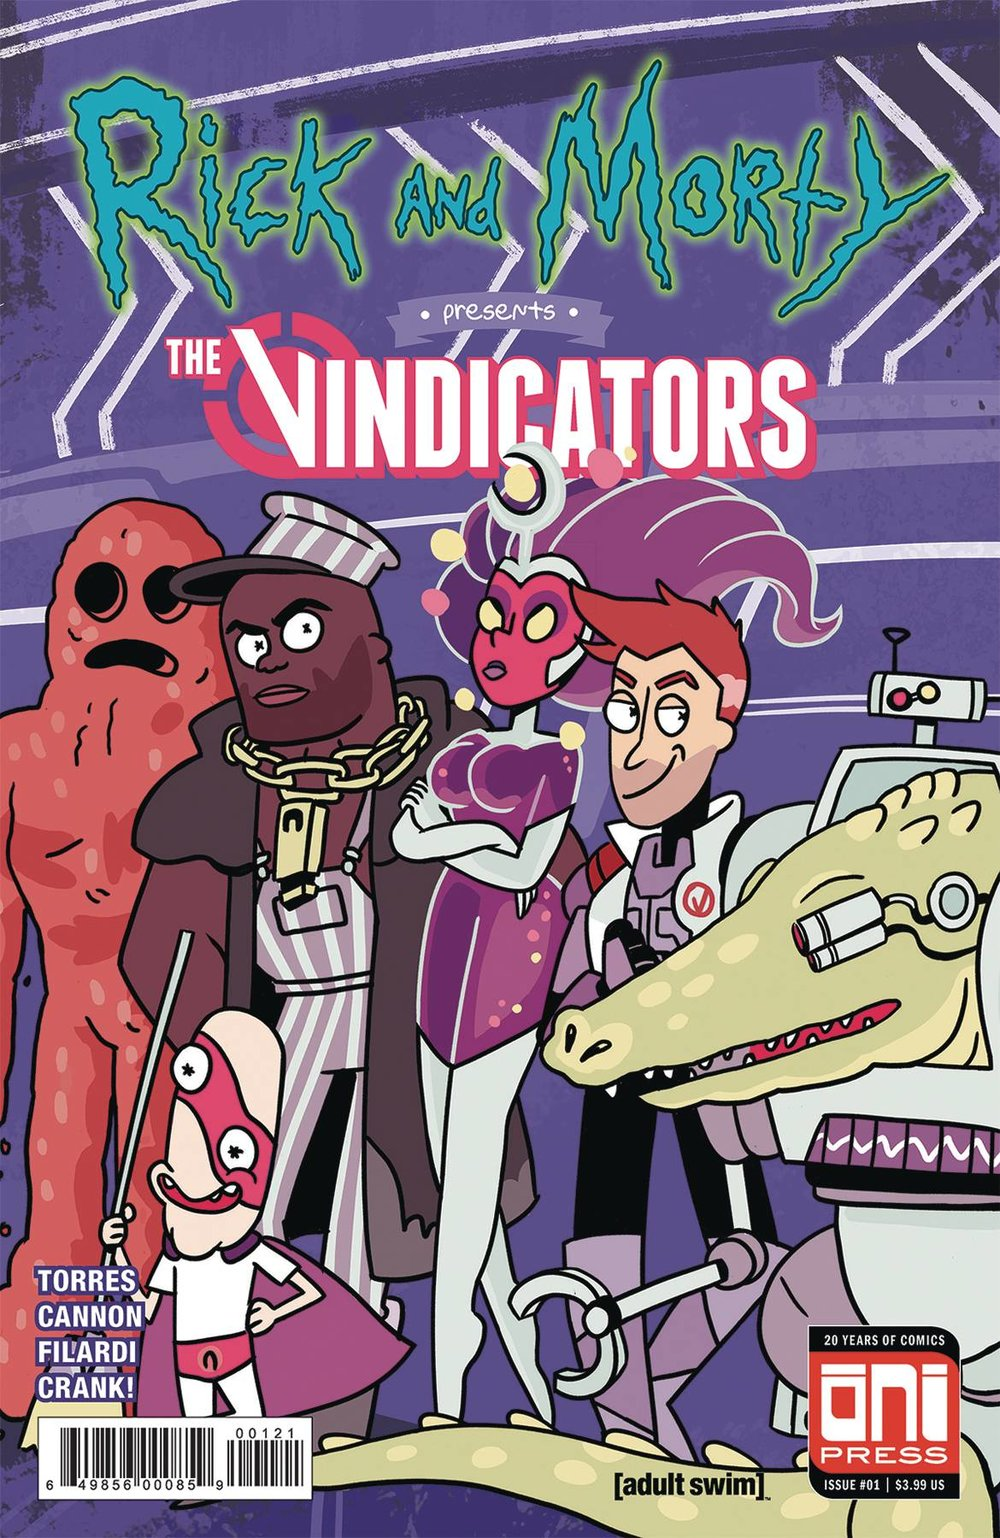 RICK _ MORTY PRESENTS THE VINDICATORS 1 CVR B.jpg